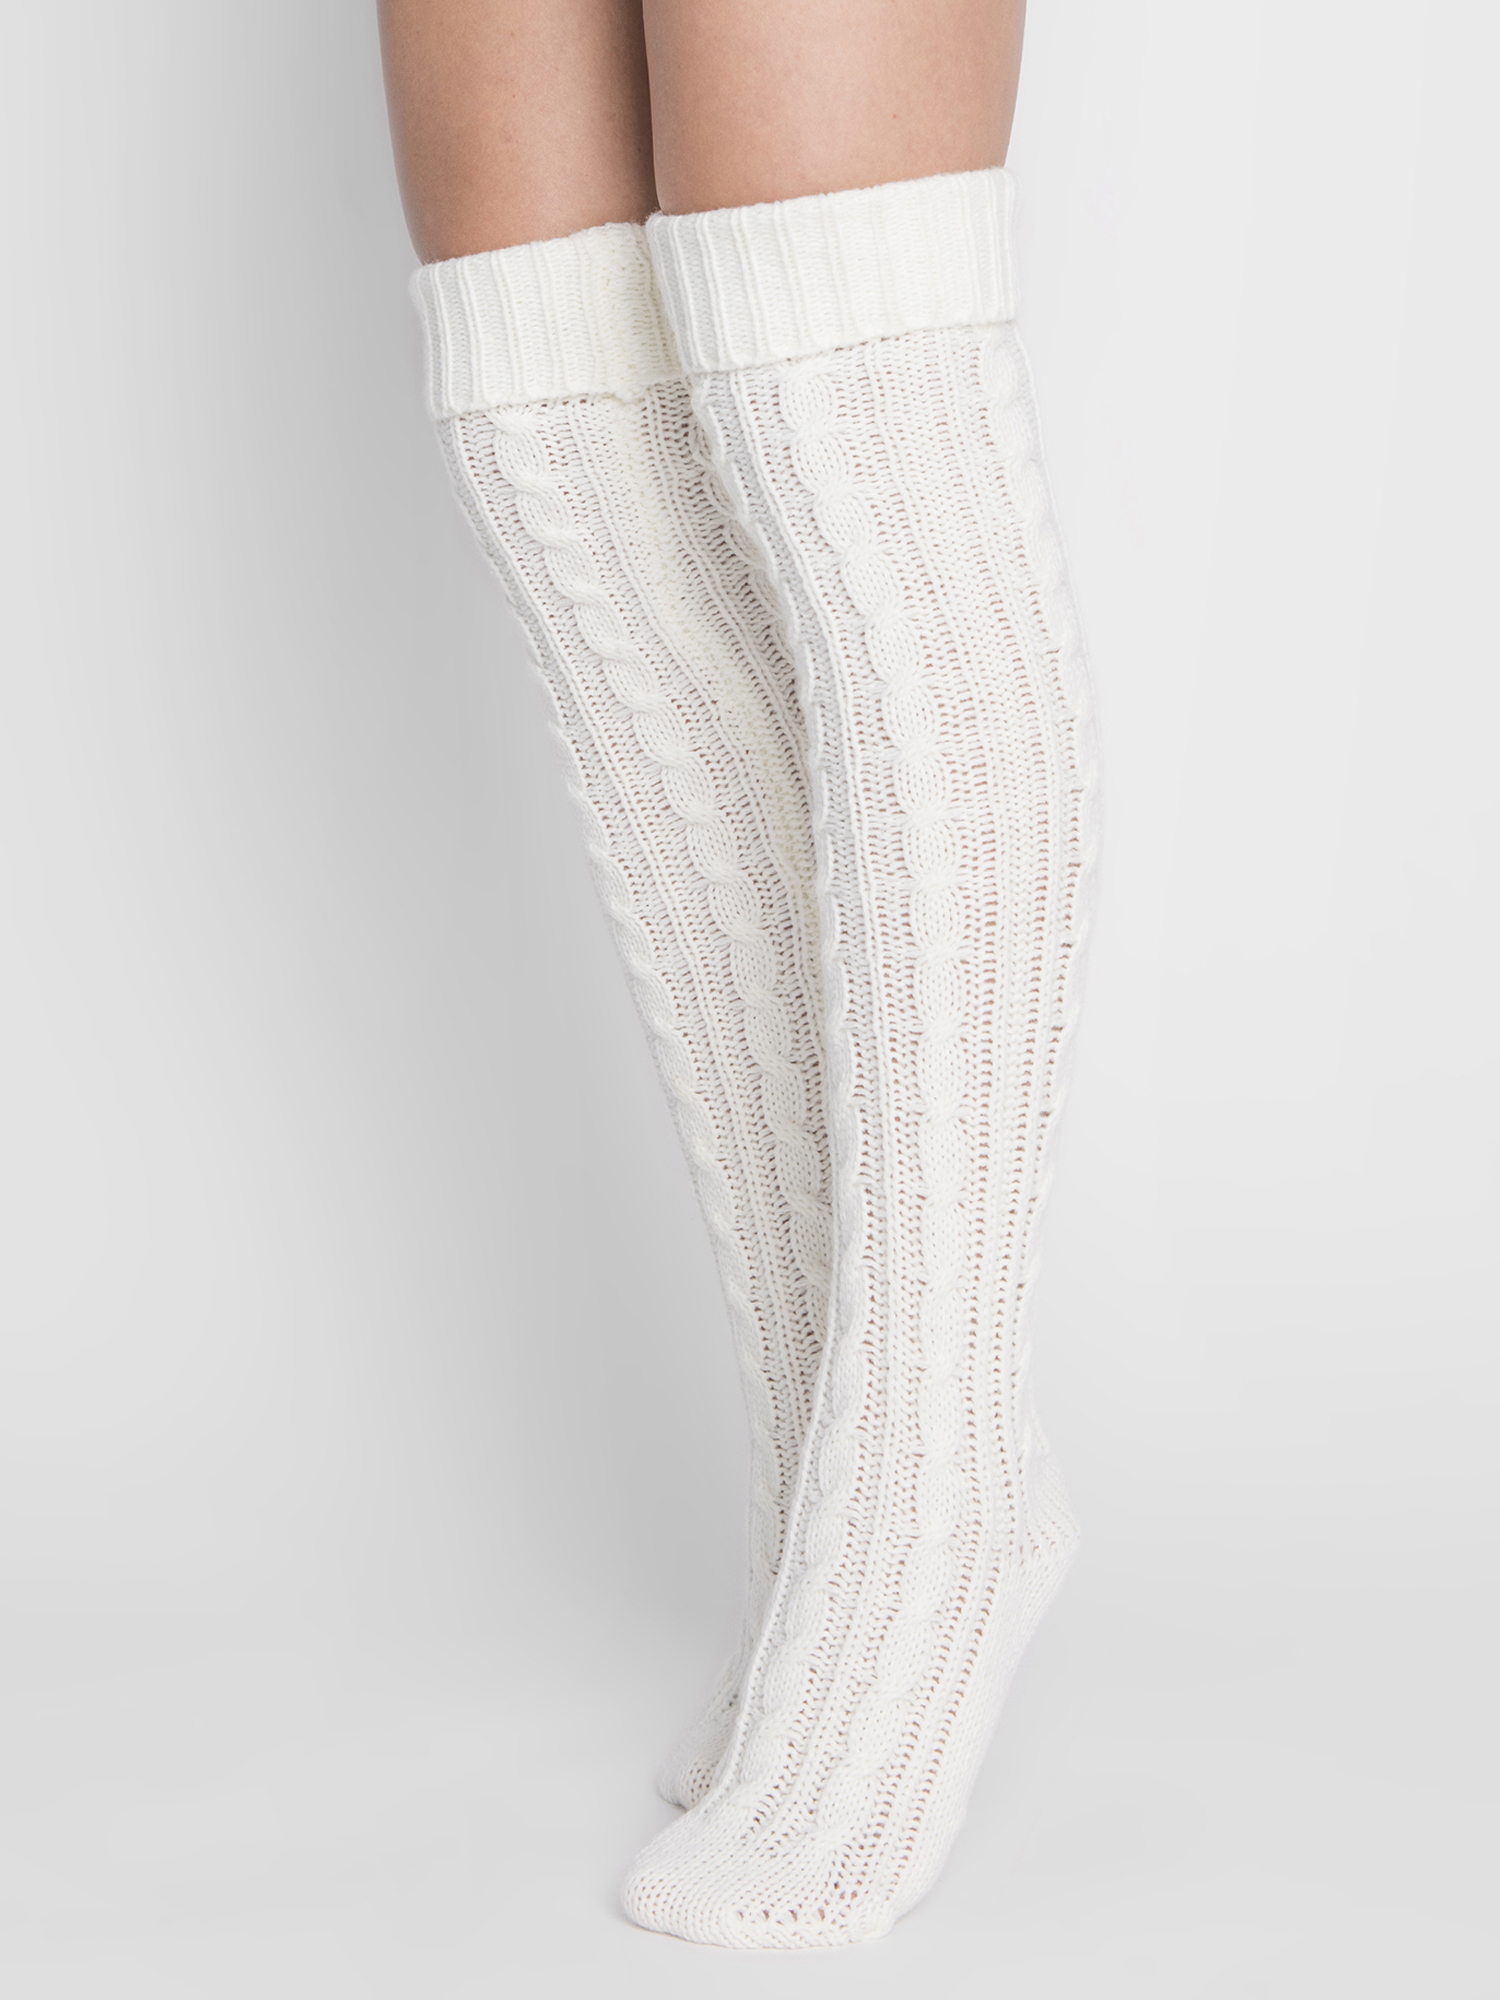 faf8b519398 Muk Luks - Women s Cable Knit Over the Knee Socks - Walmart.com